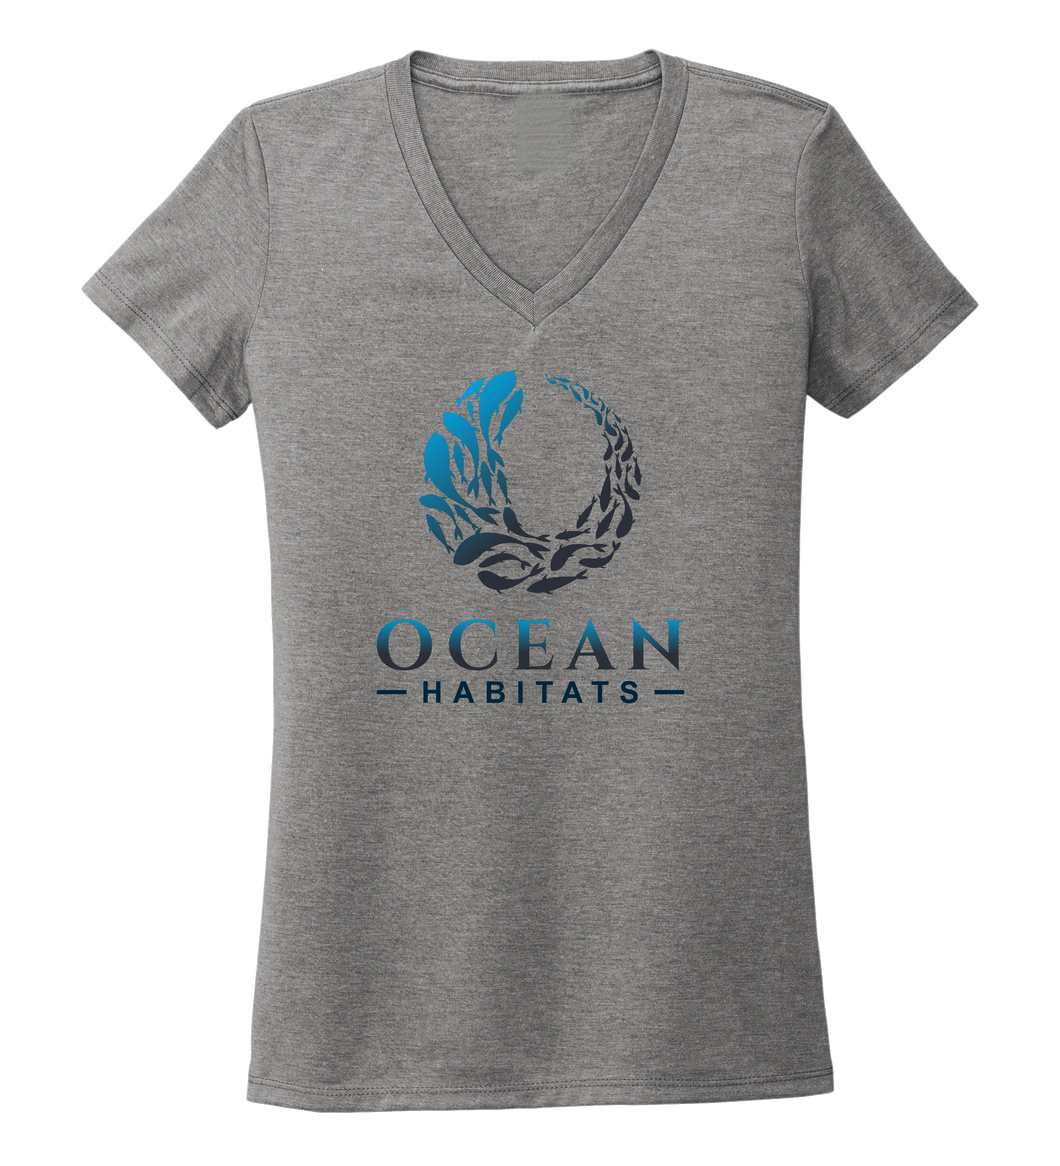 Ocean Habitats - Women's V-neck T-shirt in Oyster Grey